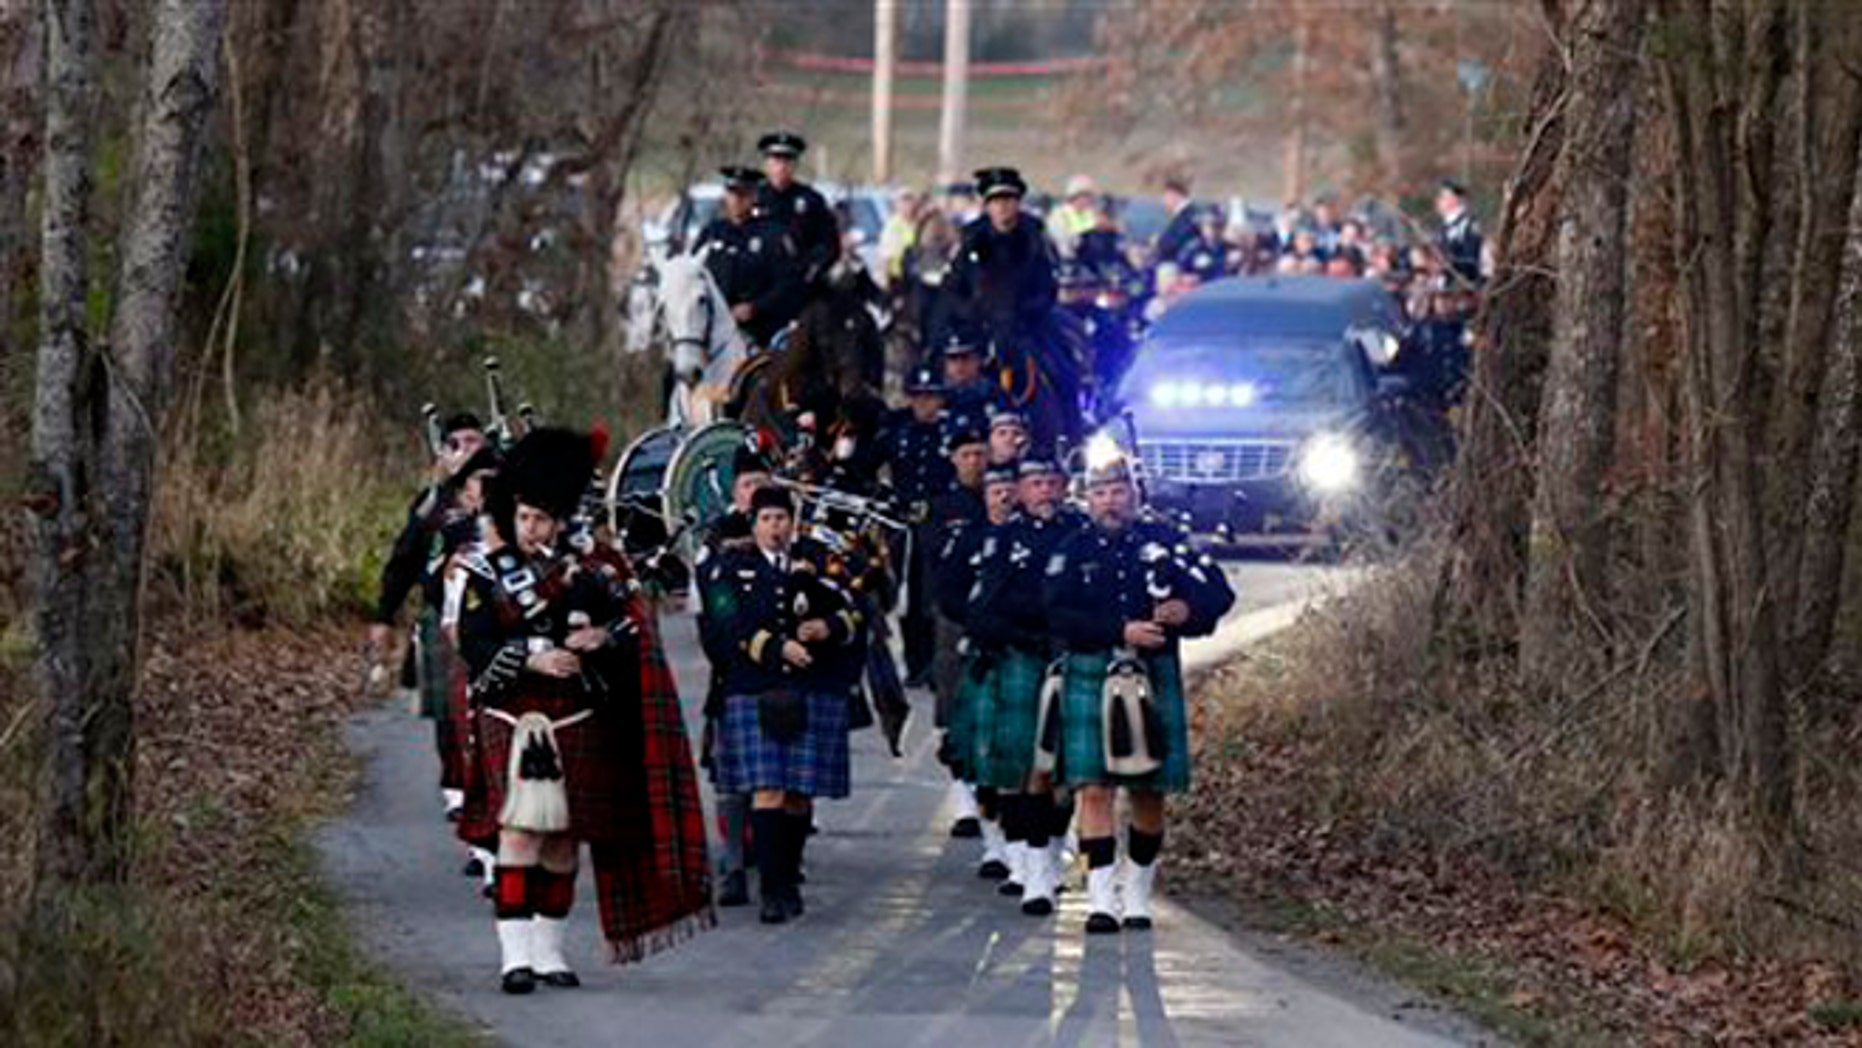 Nov. 11, 2015: Pipers and members of the Lexington Mounted Police lead the hearse during the funeral procession for Richmond Police Officer Daniel Ellis near Dunnville, Ky.